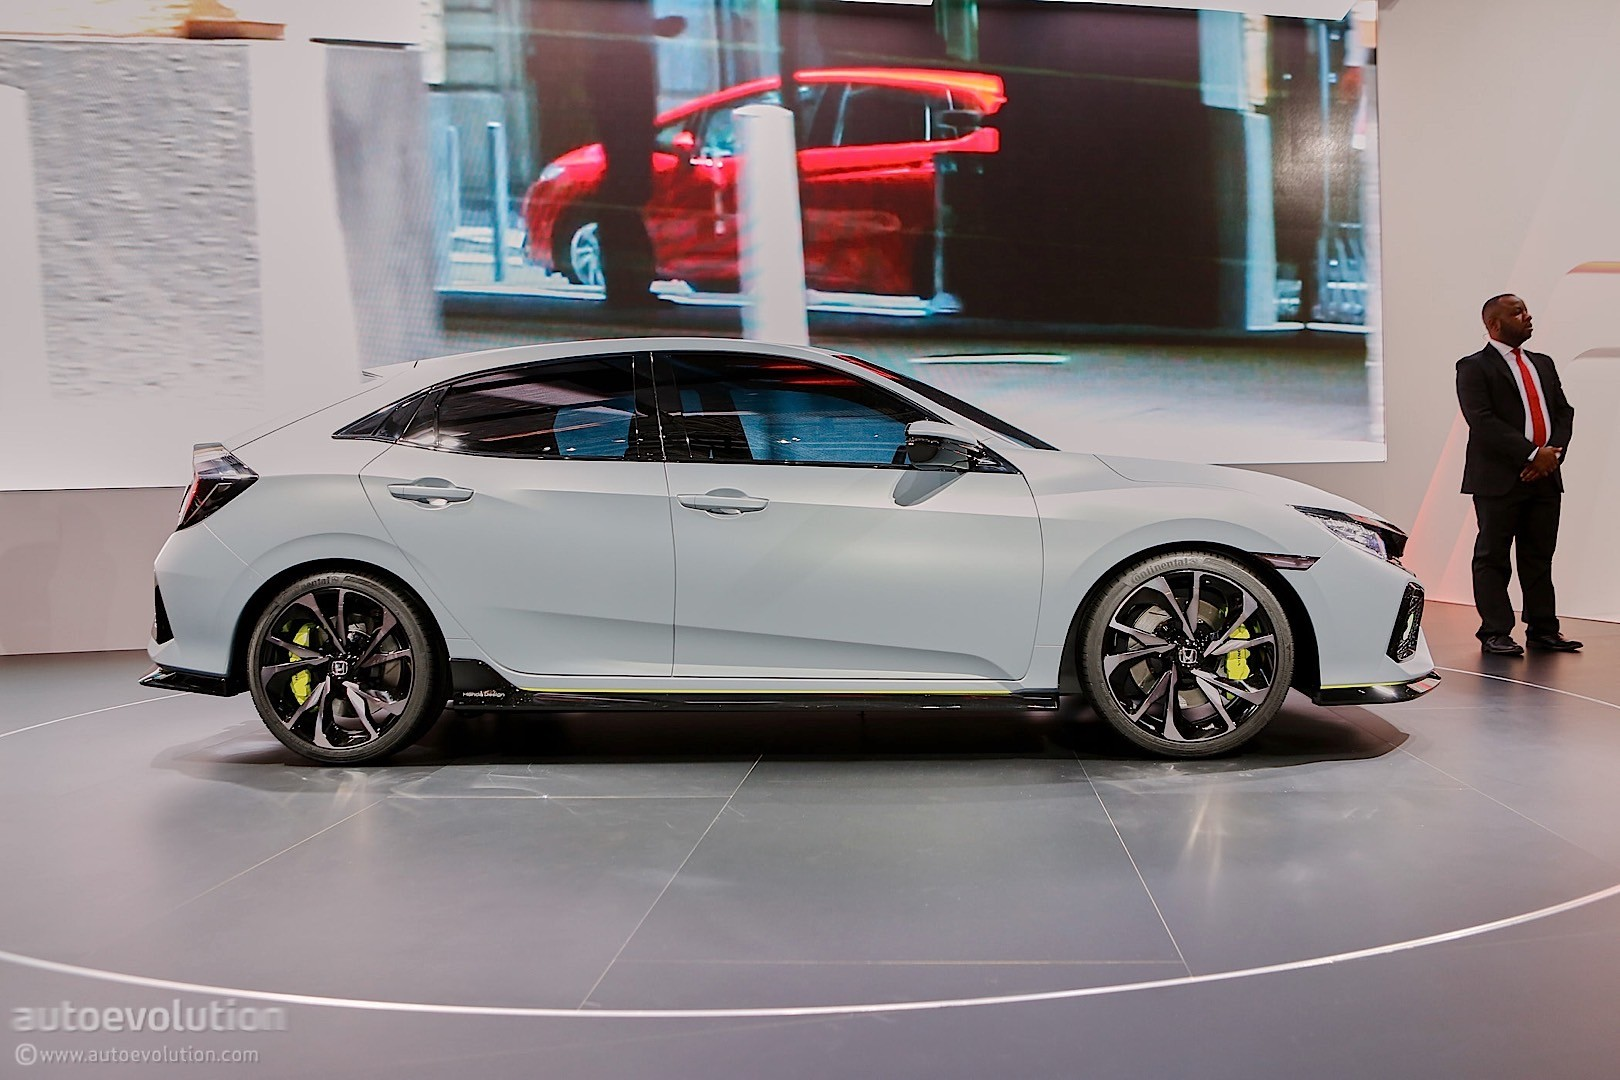 2017 Honda Civic Hatchback Previewed by Concept in Geneva - autoevolution